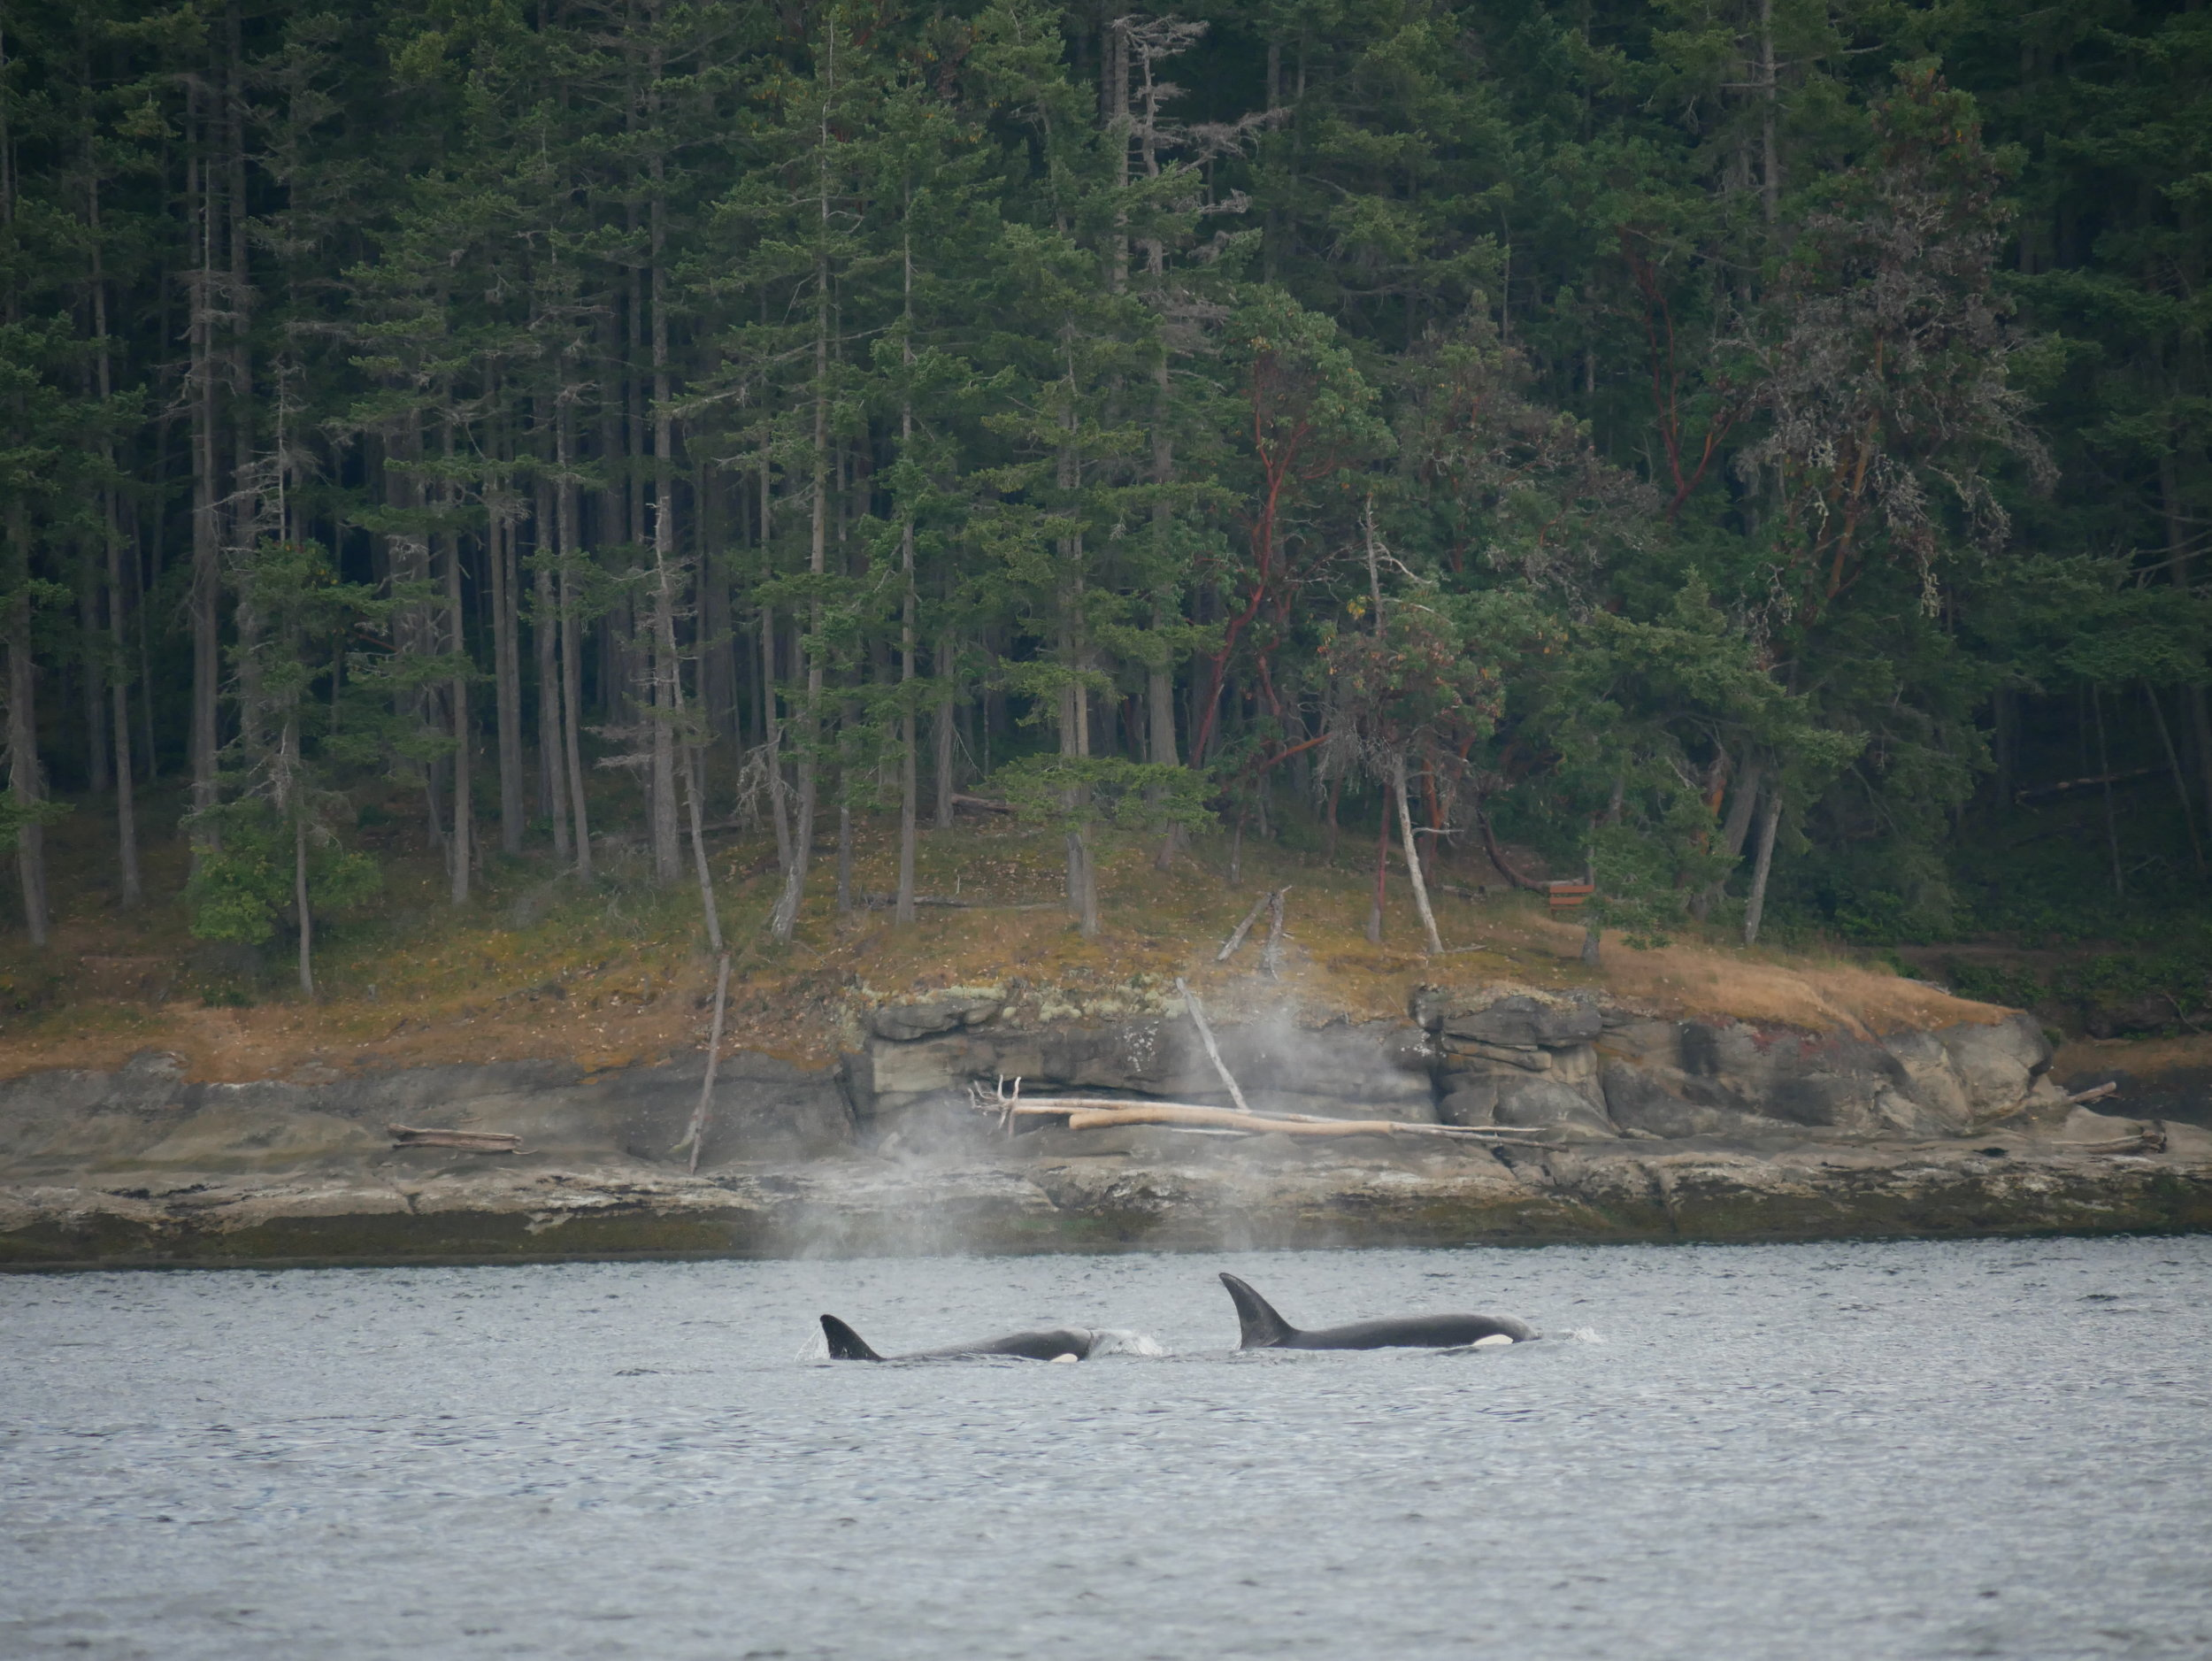 Beautiful west coast backdrop for some majestic killer whales. Photo by Val Watson